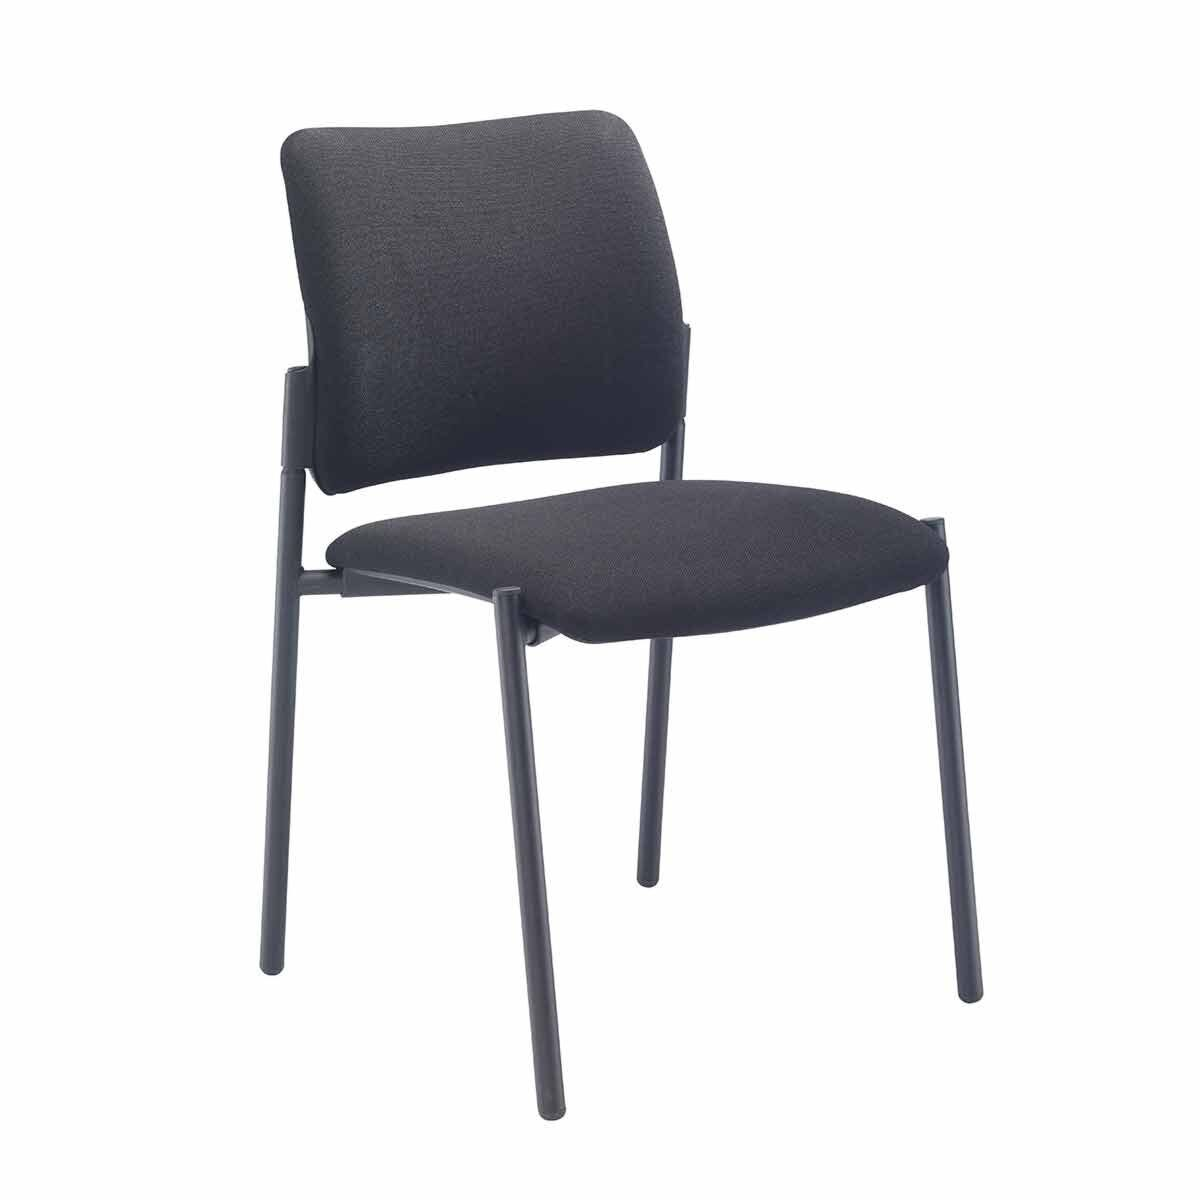 TC Office Florence Fabric Side Chair with Black Frame